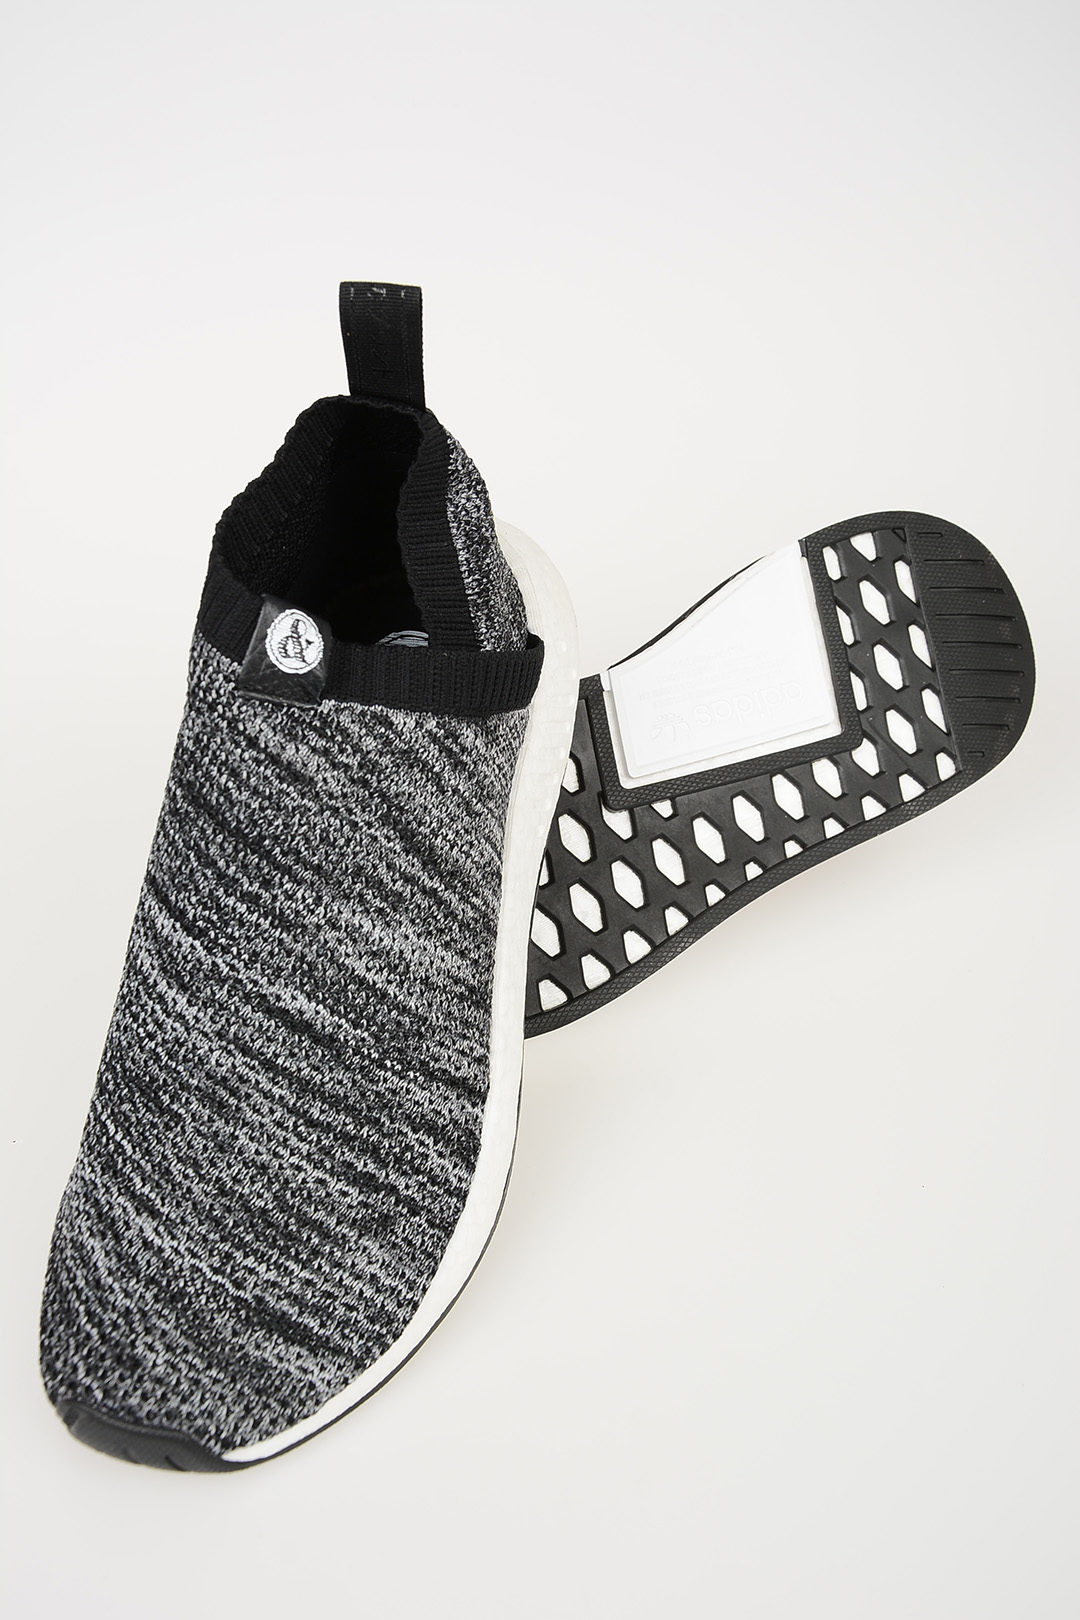 d2a93db21 Adidas Fabric NMD CS2 PK UAS Sneakers men - Glamood Outlet